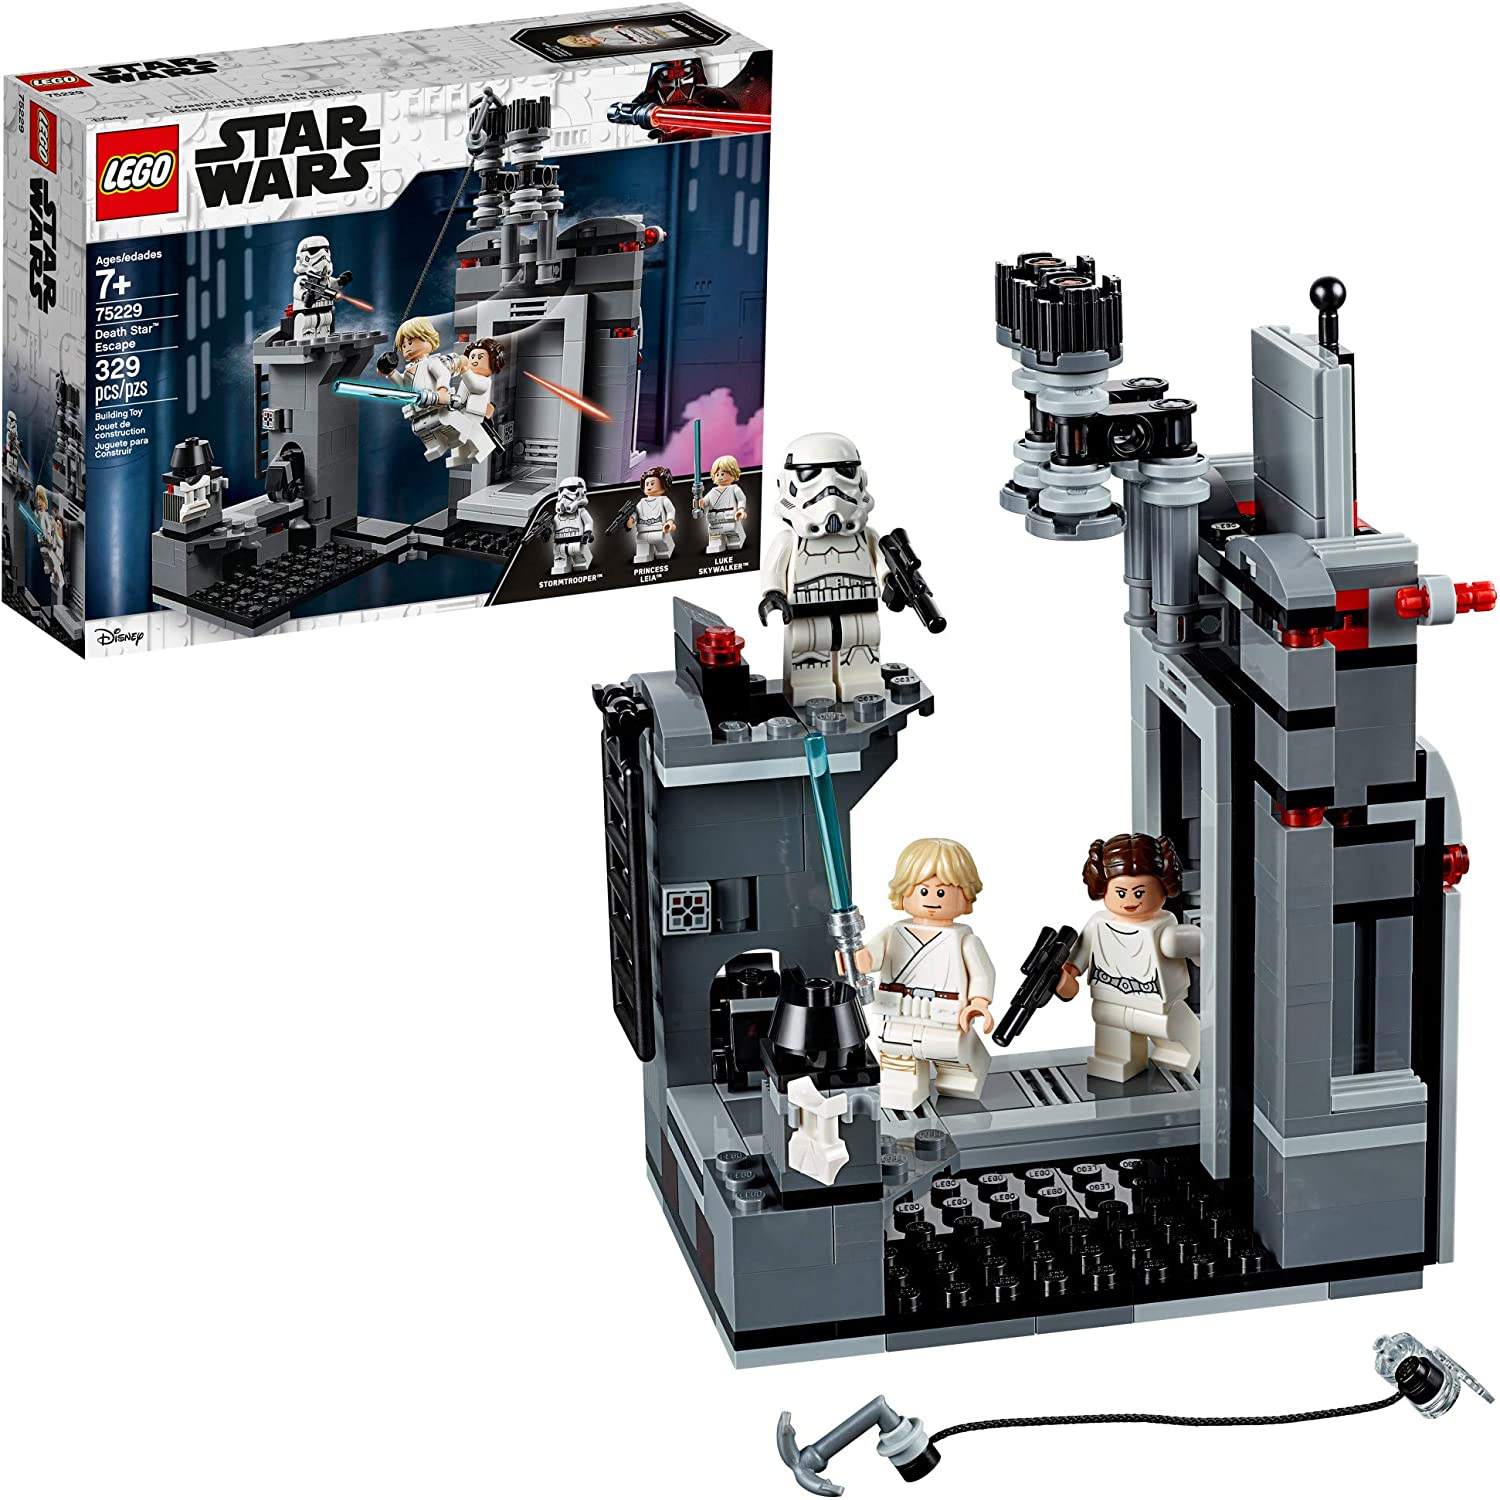 LEGO Star Wars: A New Hope Death Star Escape 75229 Building Kit